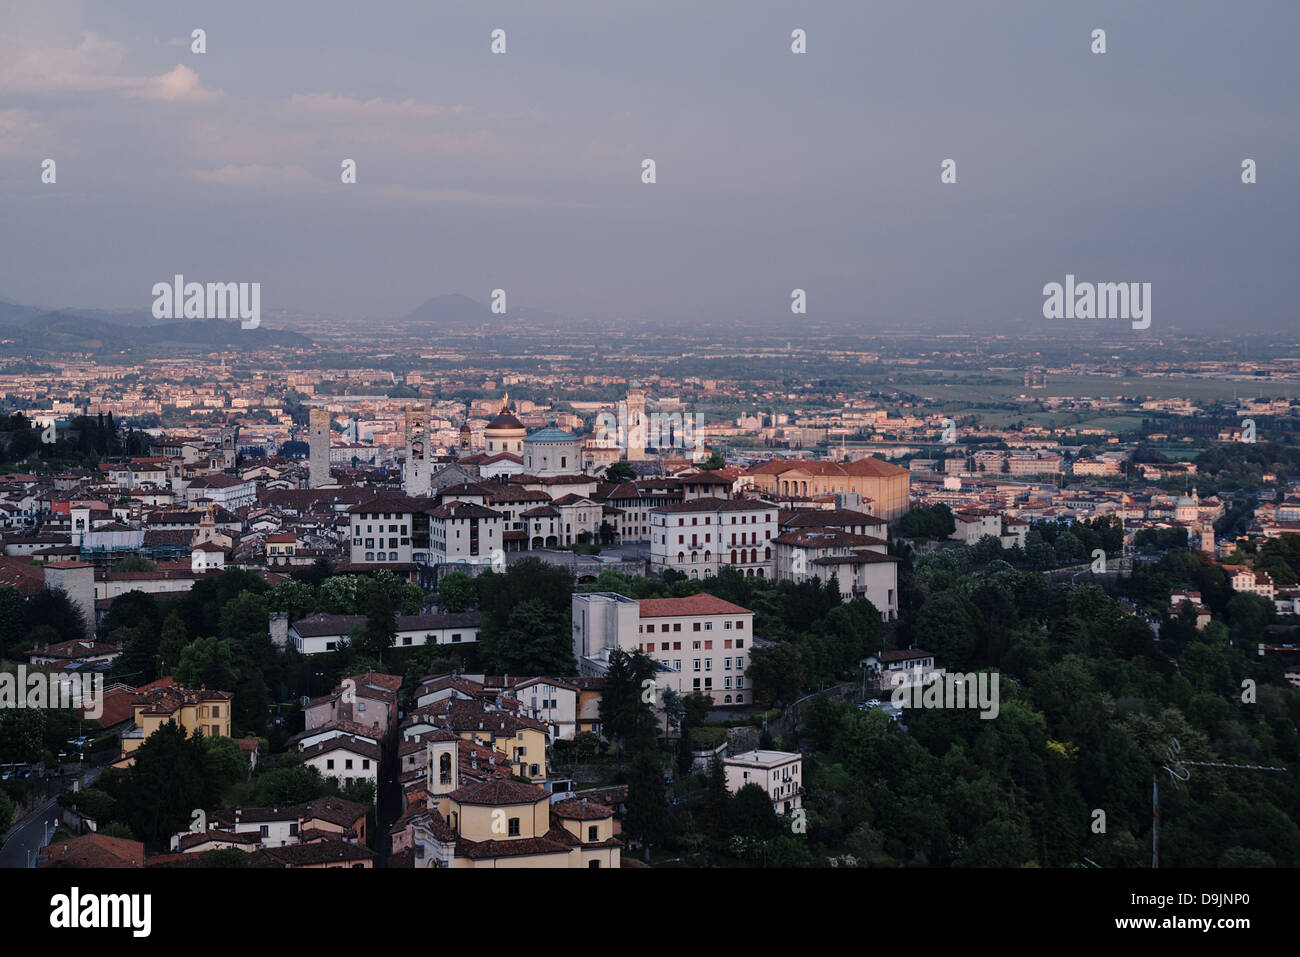 City of Bergamo.  Lombardy, Italy - Stock Image